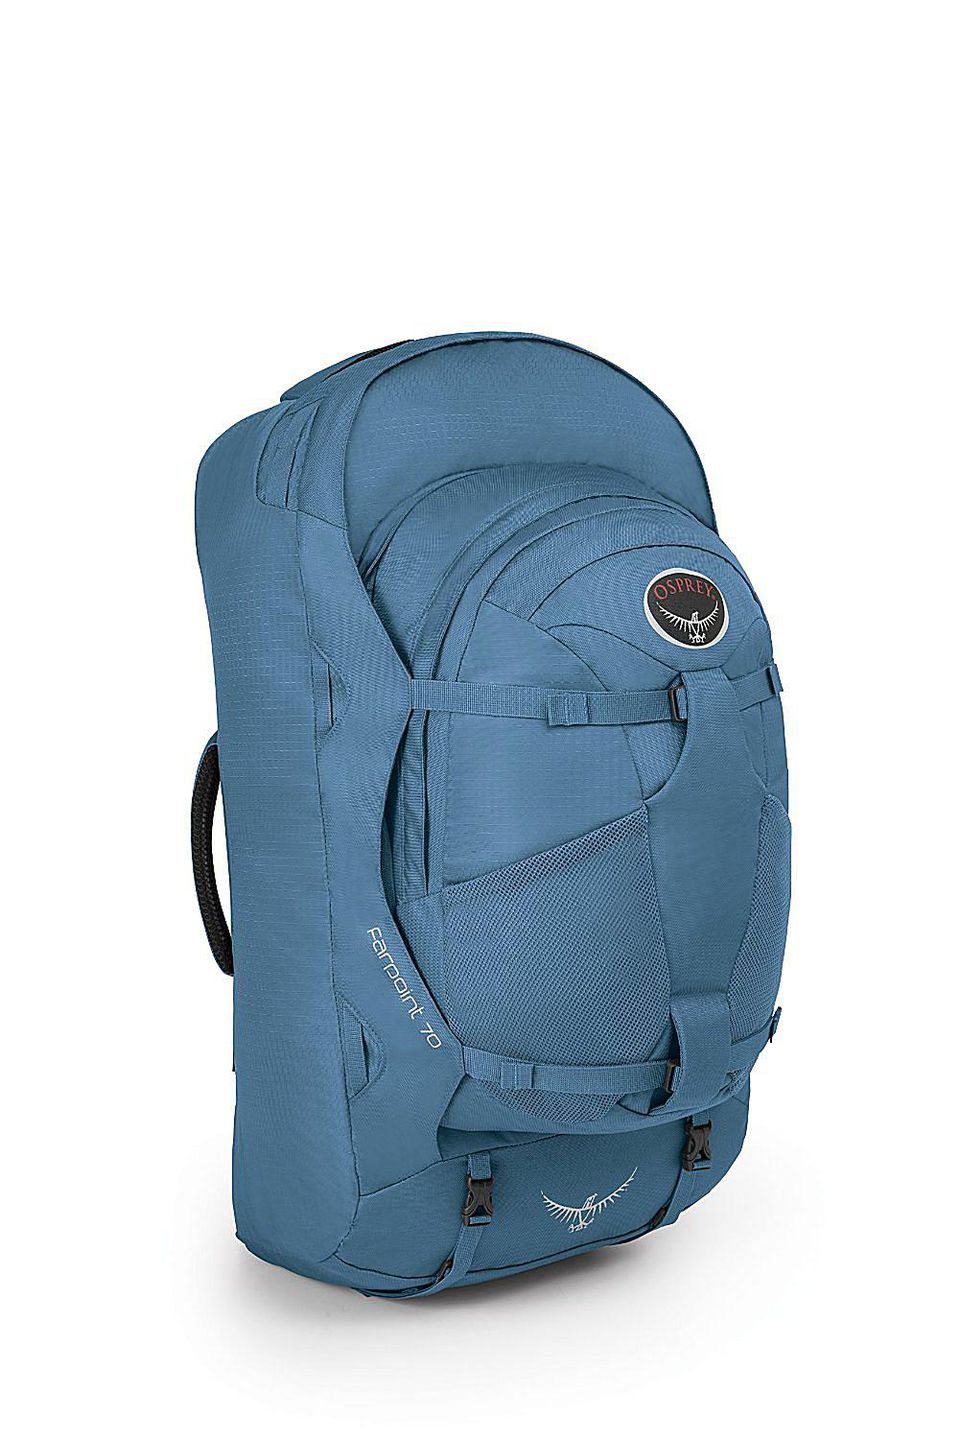 610e0c602e31 Why the Osprey Farpoint 70 is the Best Travel Backpack